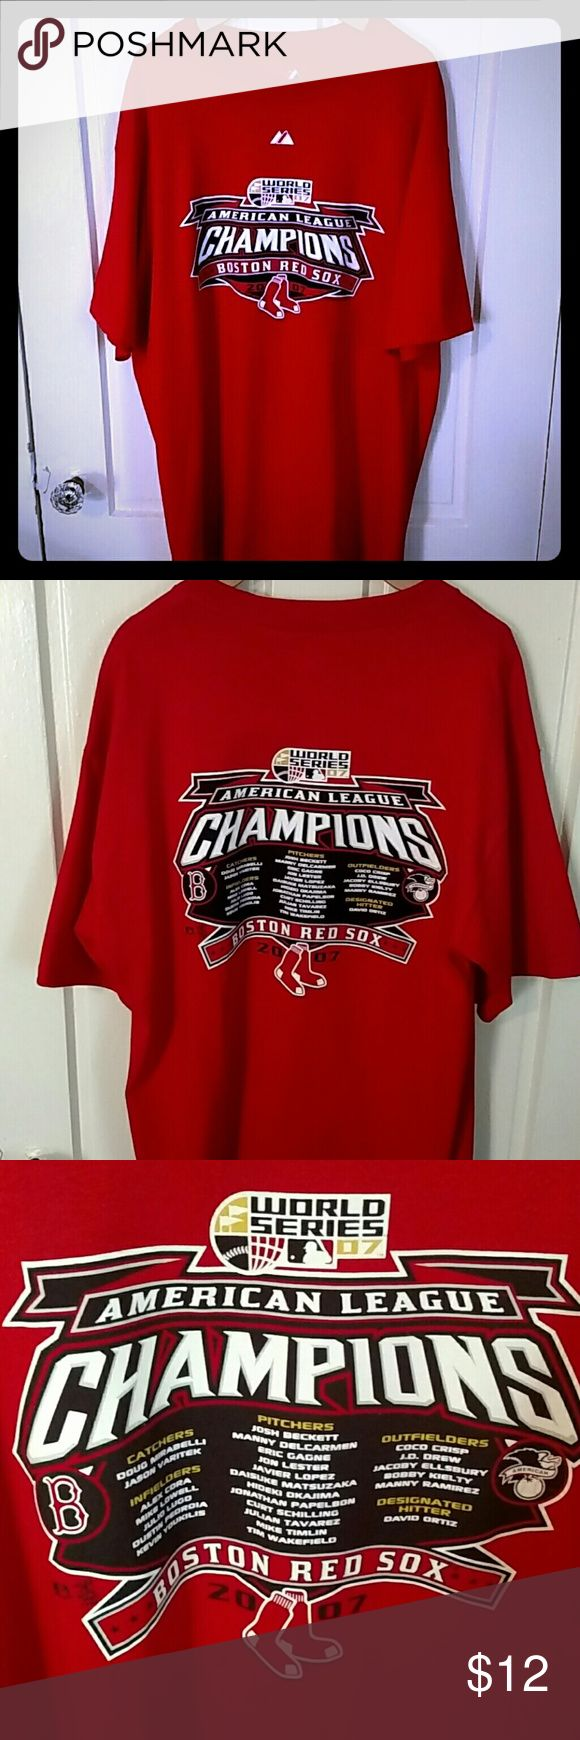 Boston Red Sox Tee Men's Large Boston Red Sox 2007 American League Championship short sleeved tee shirt. Excellent used condition maybe worn a couple times. Majestic Shirts Tees - Short Sleeve